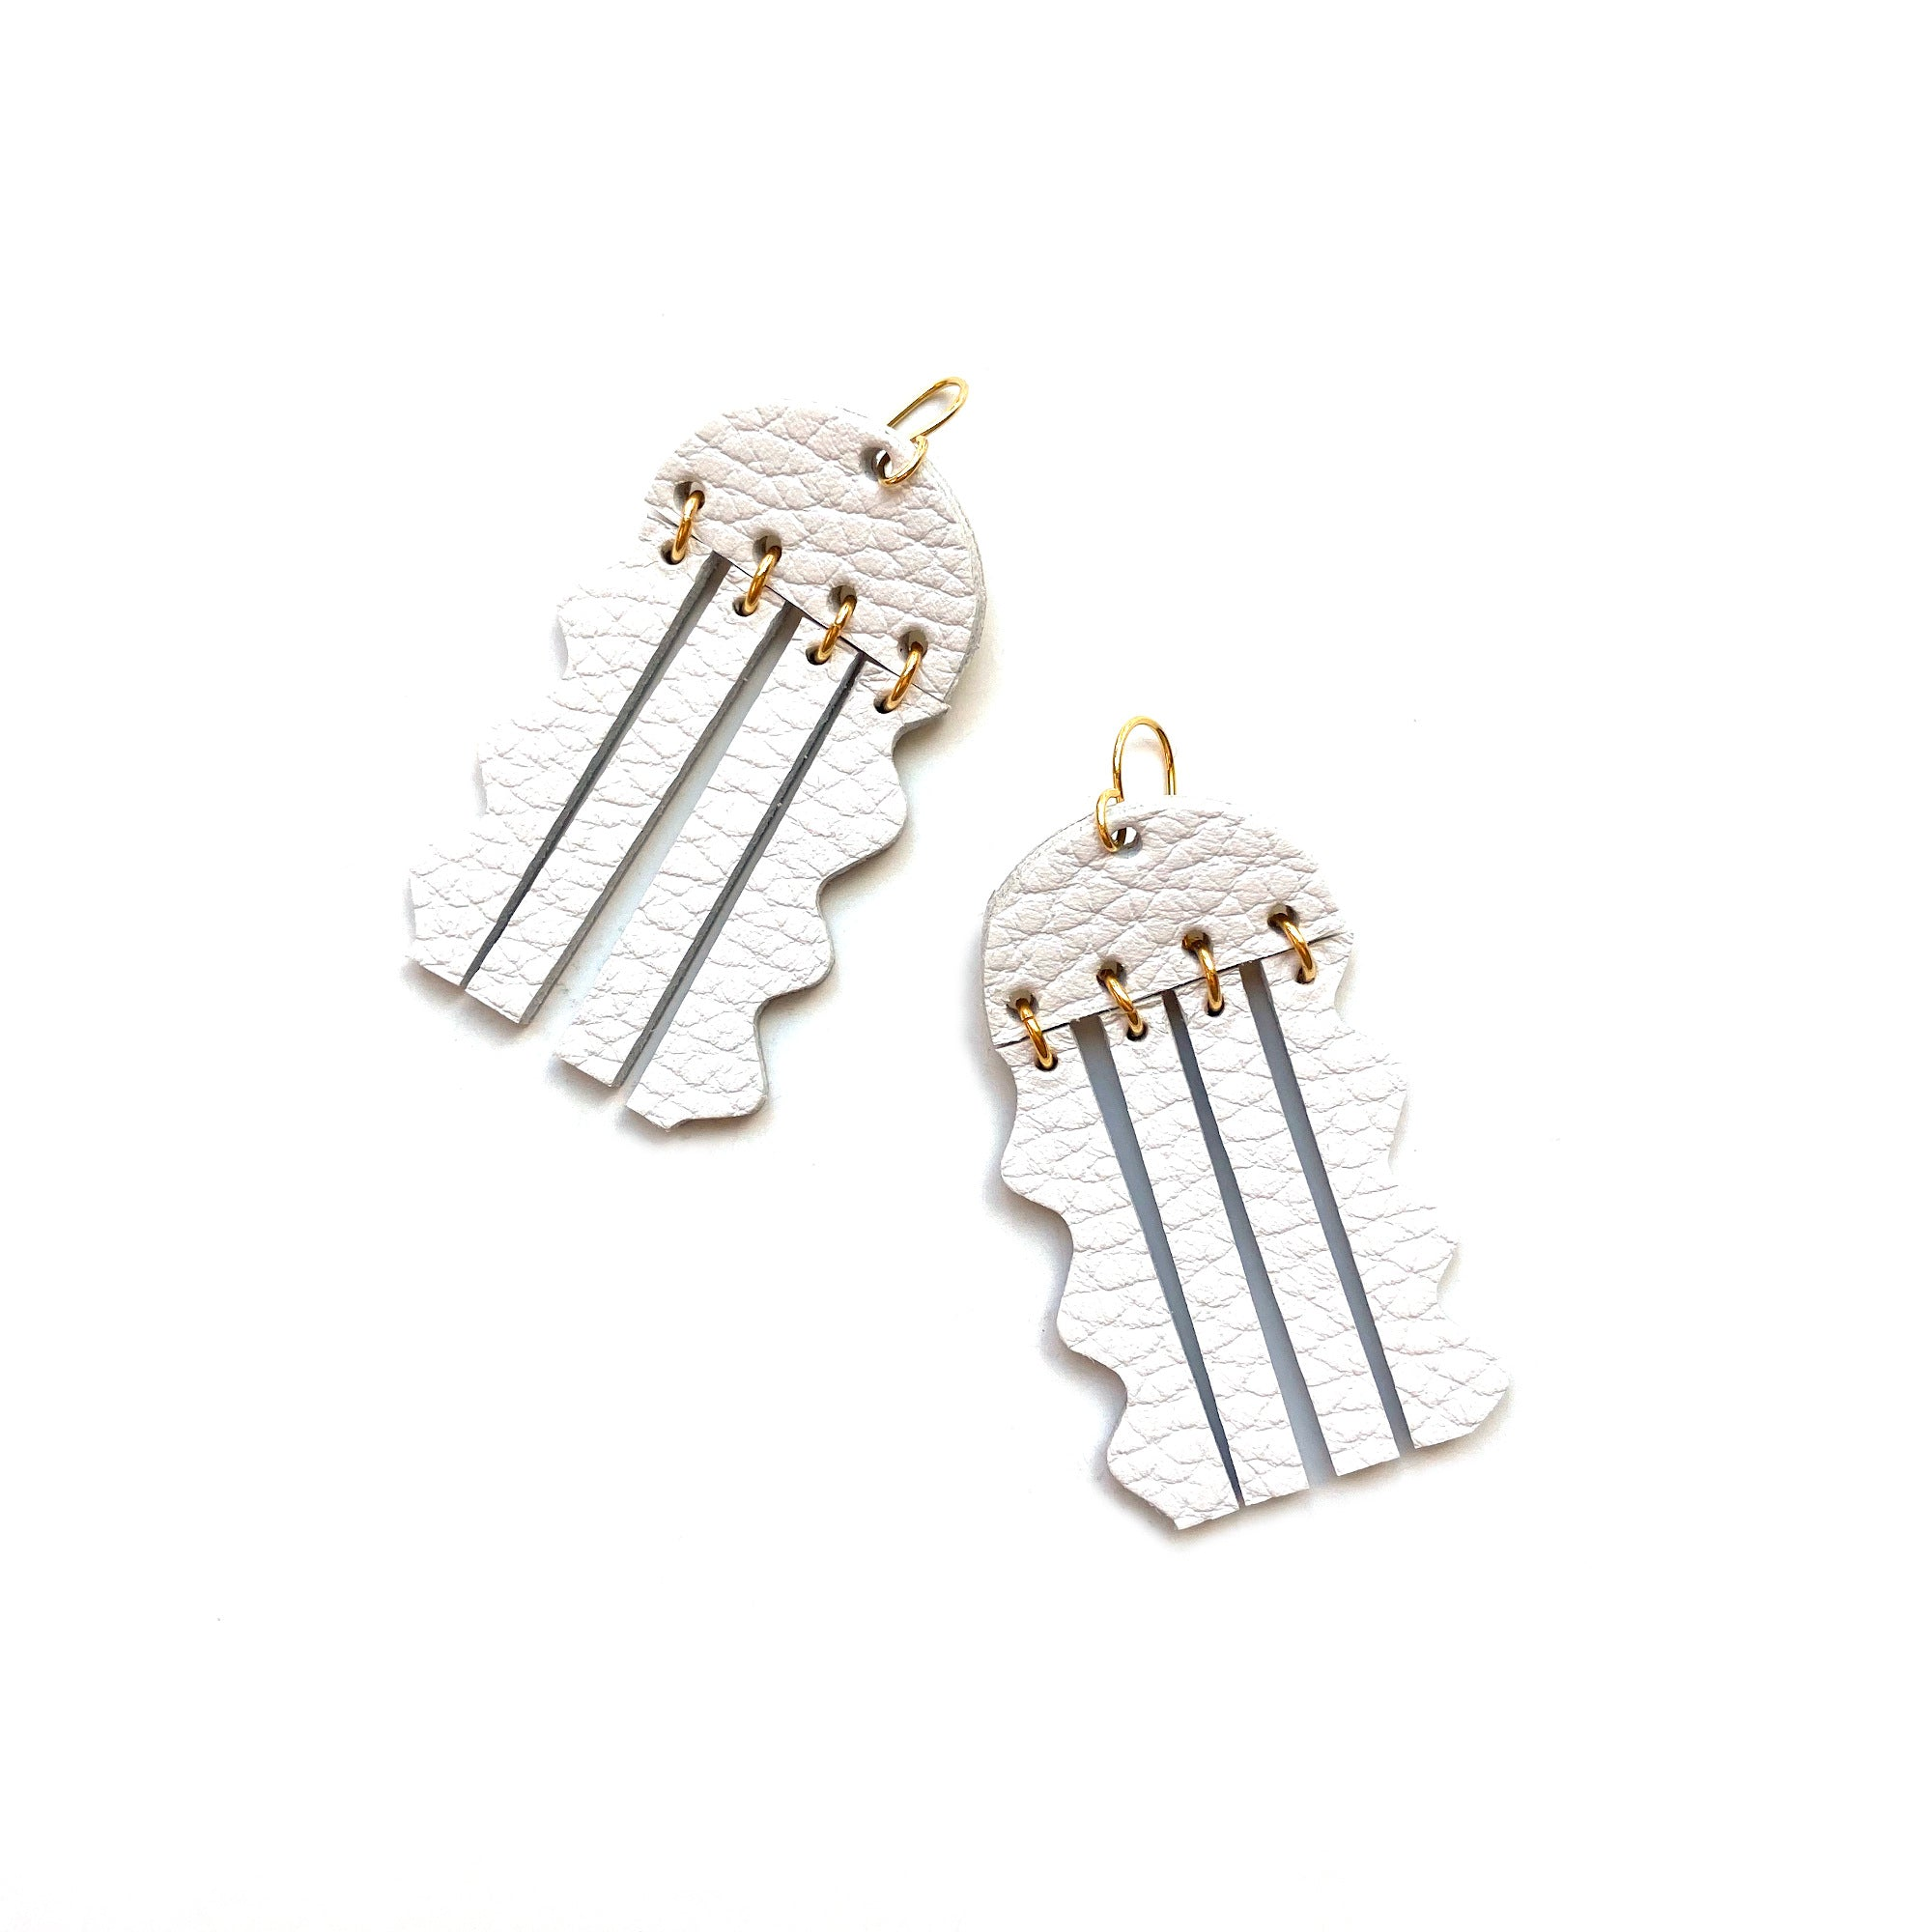 Jellyfish earrings by Two boss beads